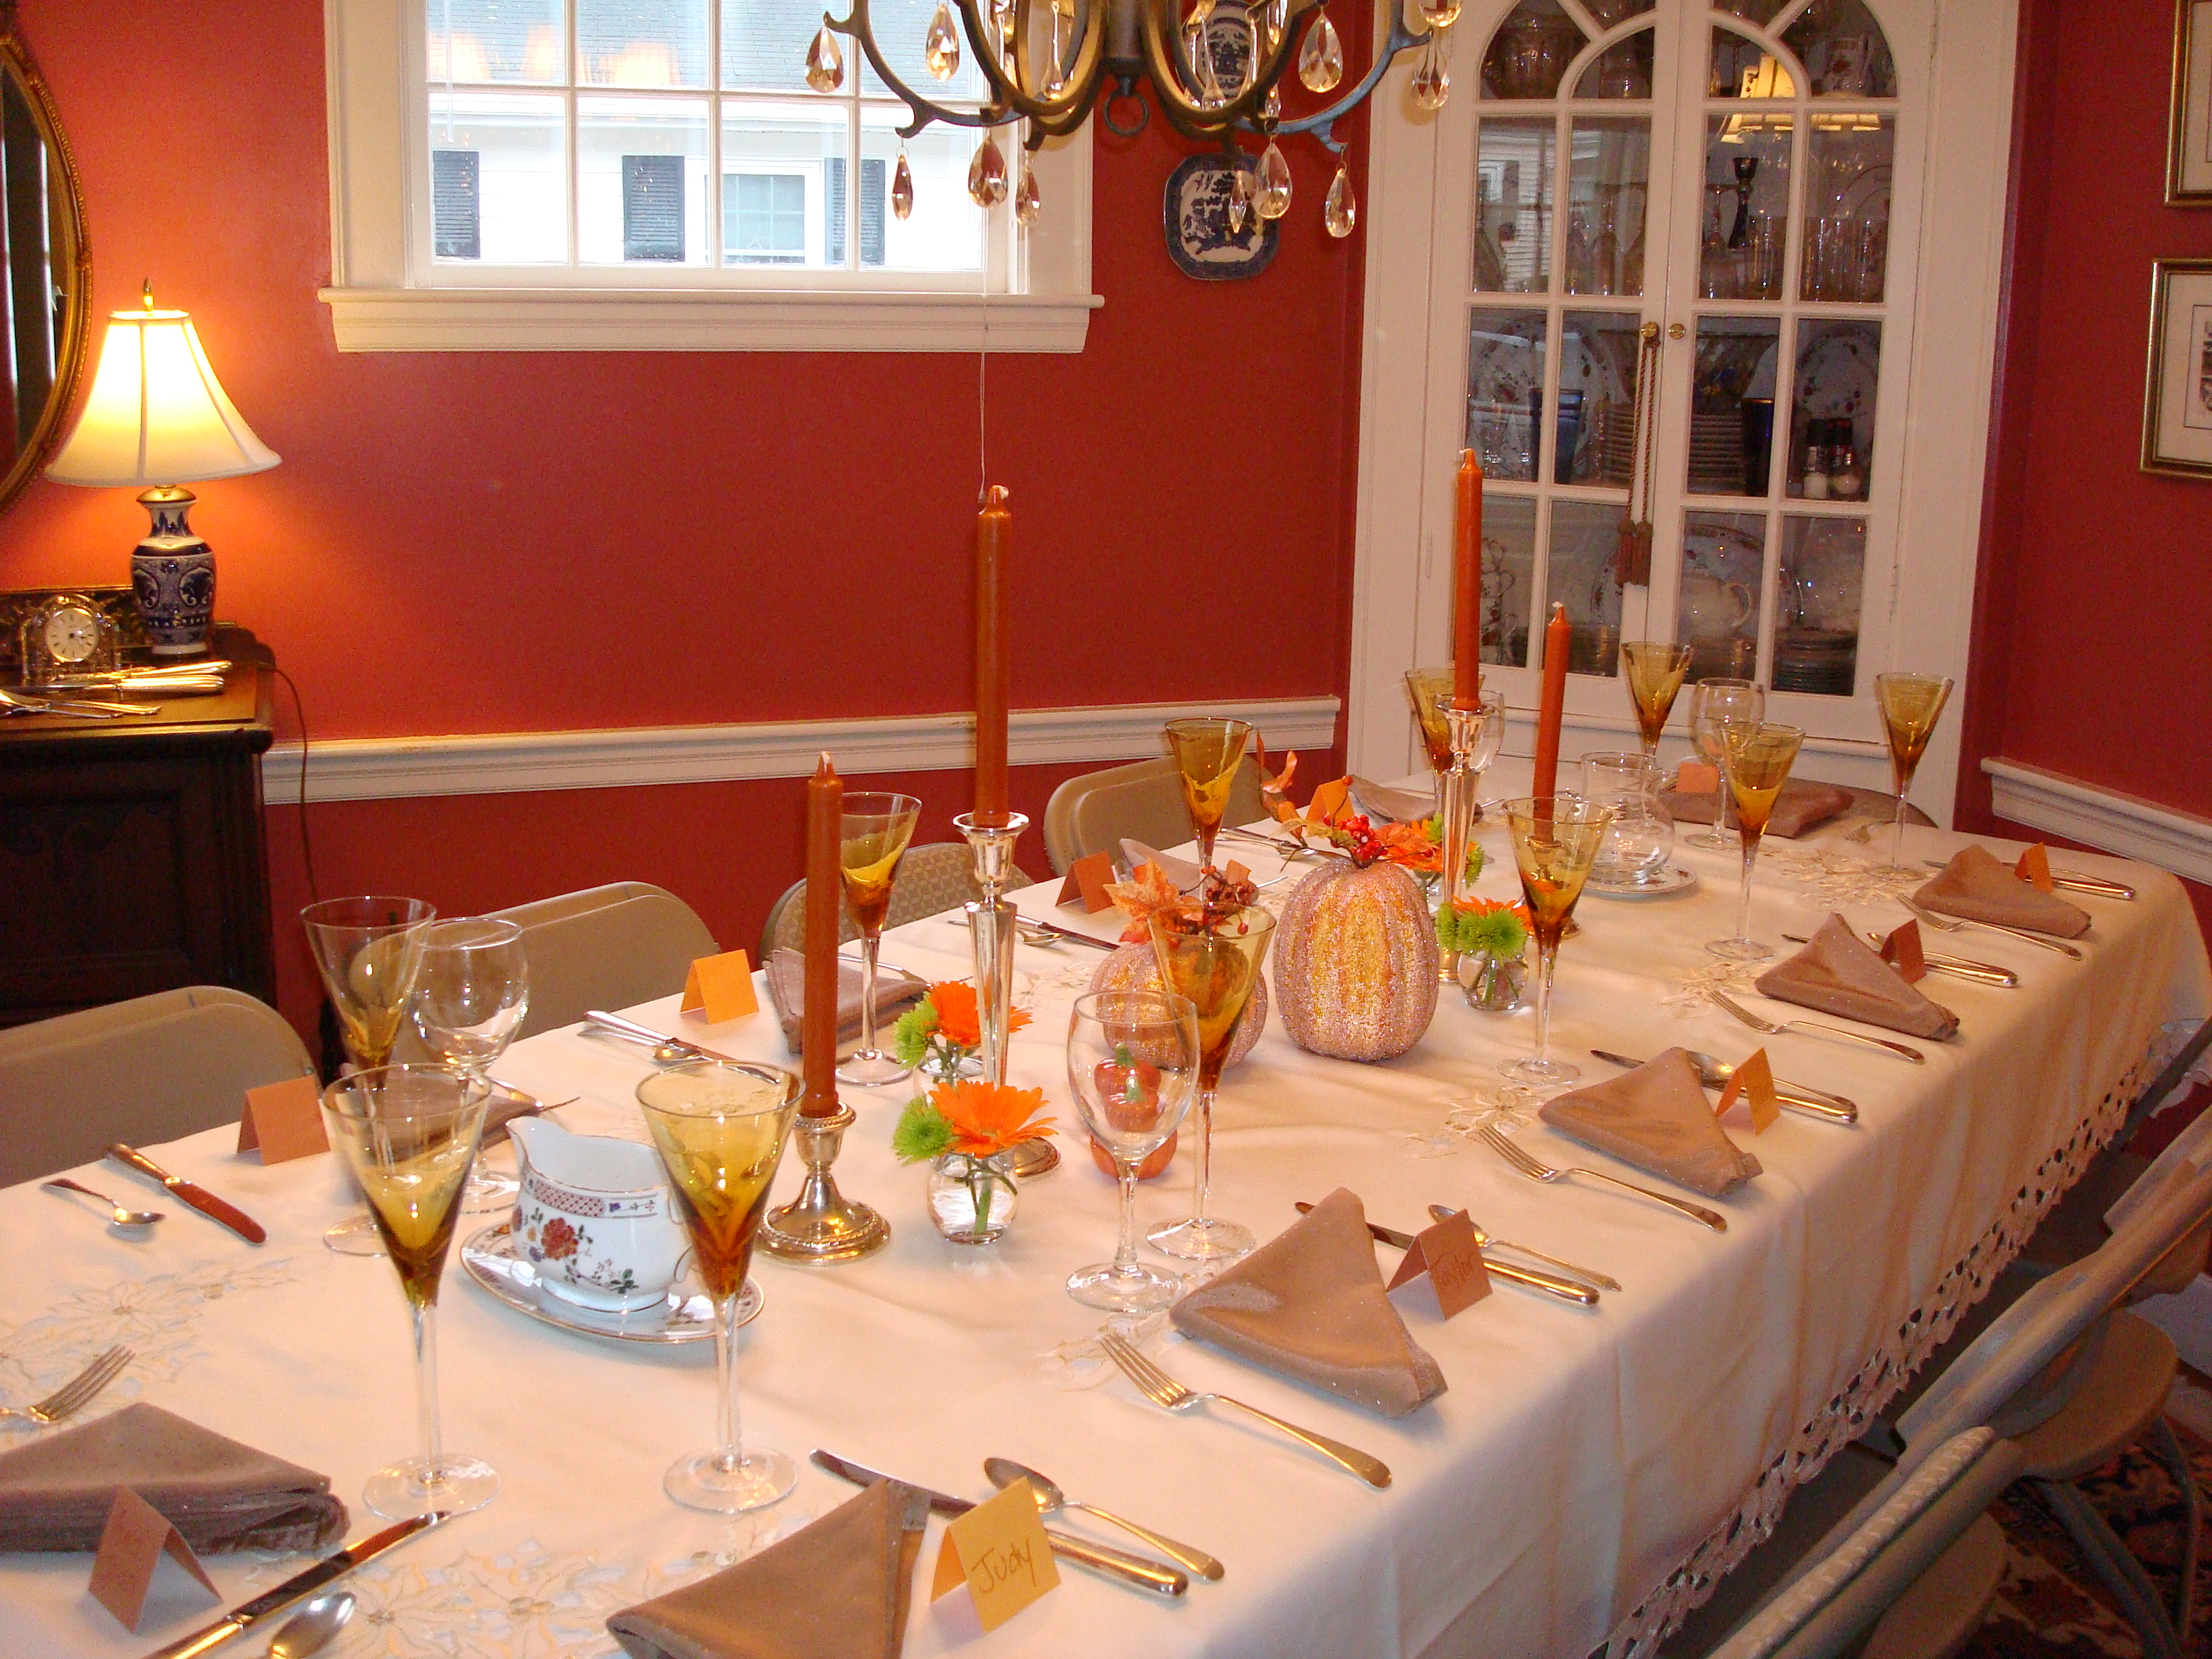 301 moved permanently Decorating thanksgiving table